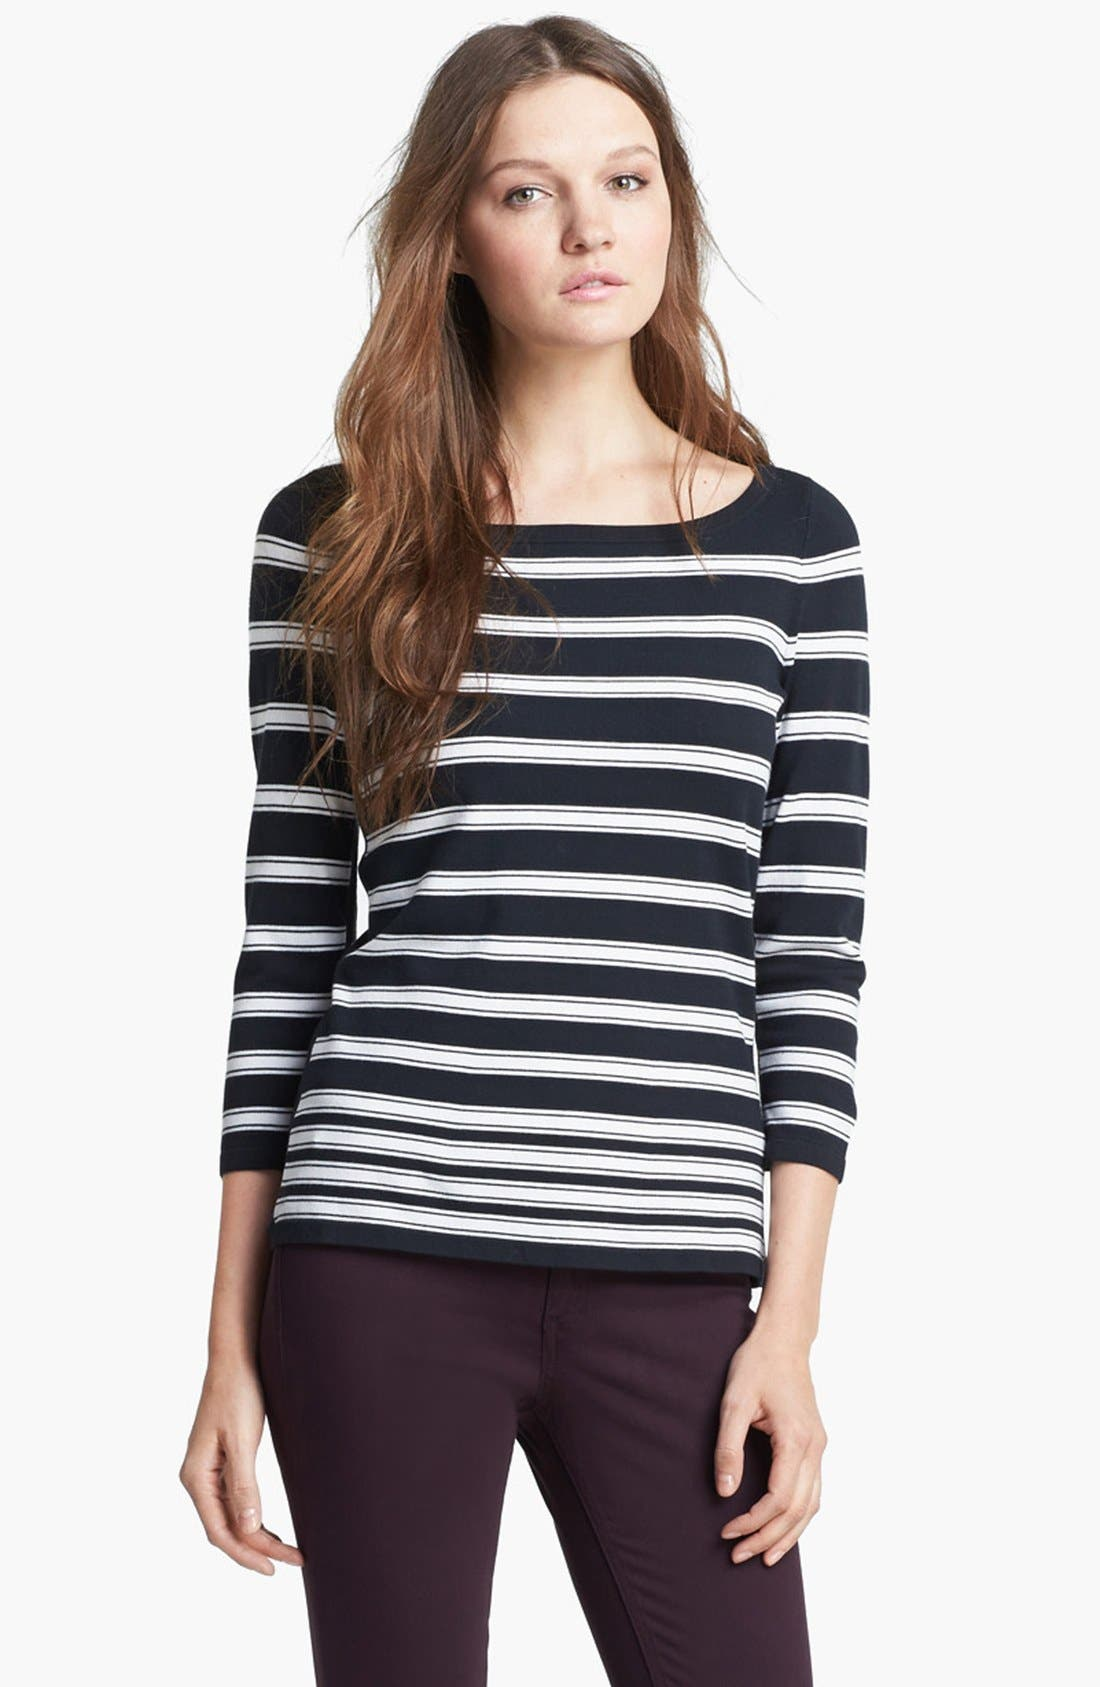 Alternate Image 1 Selected - rag & bone 'Sara' Stripe Knit Top